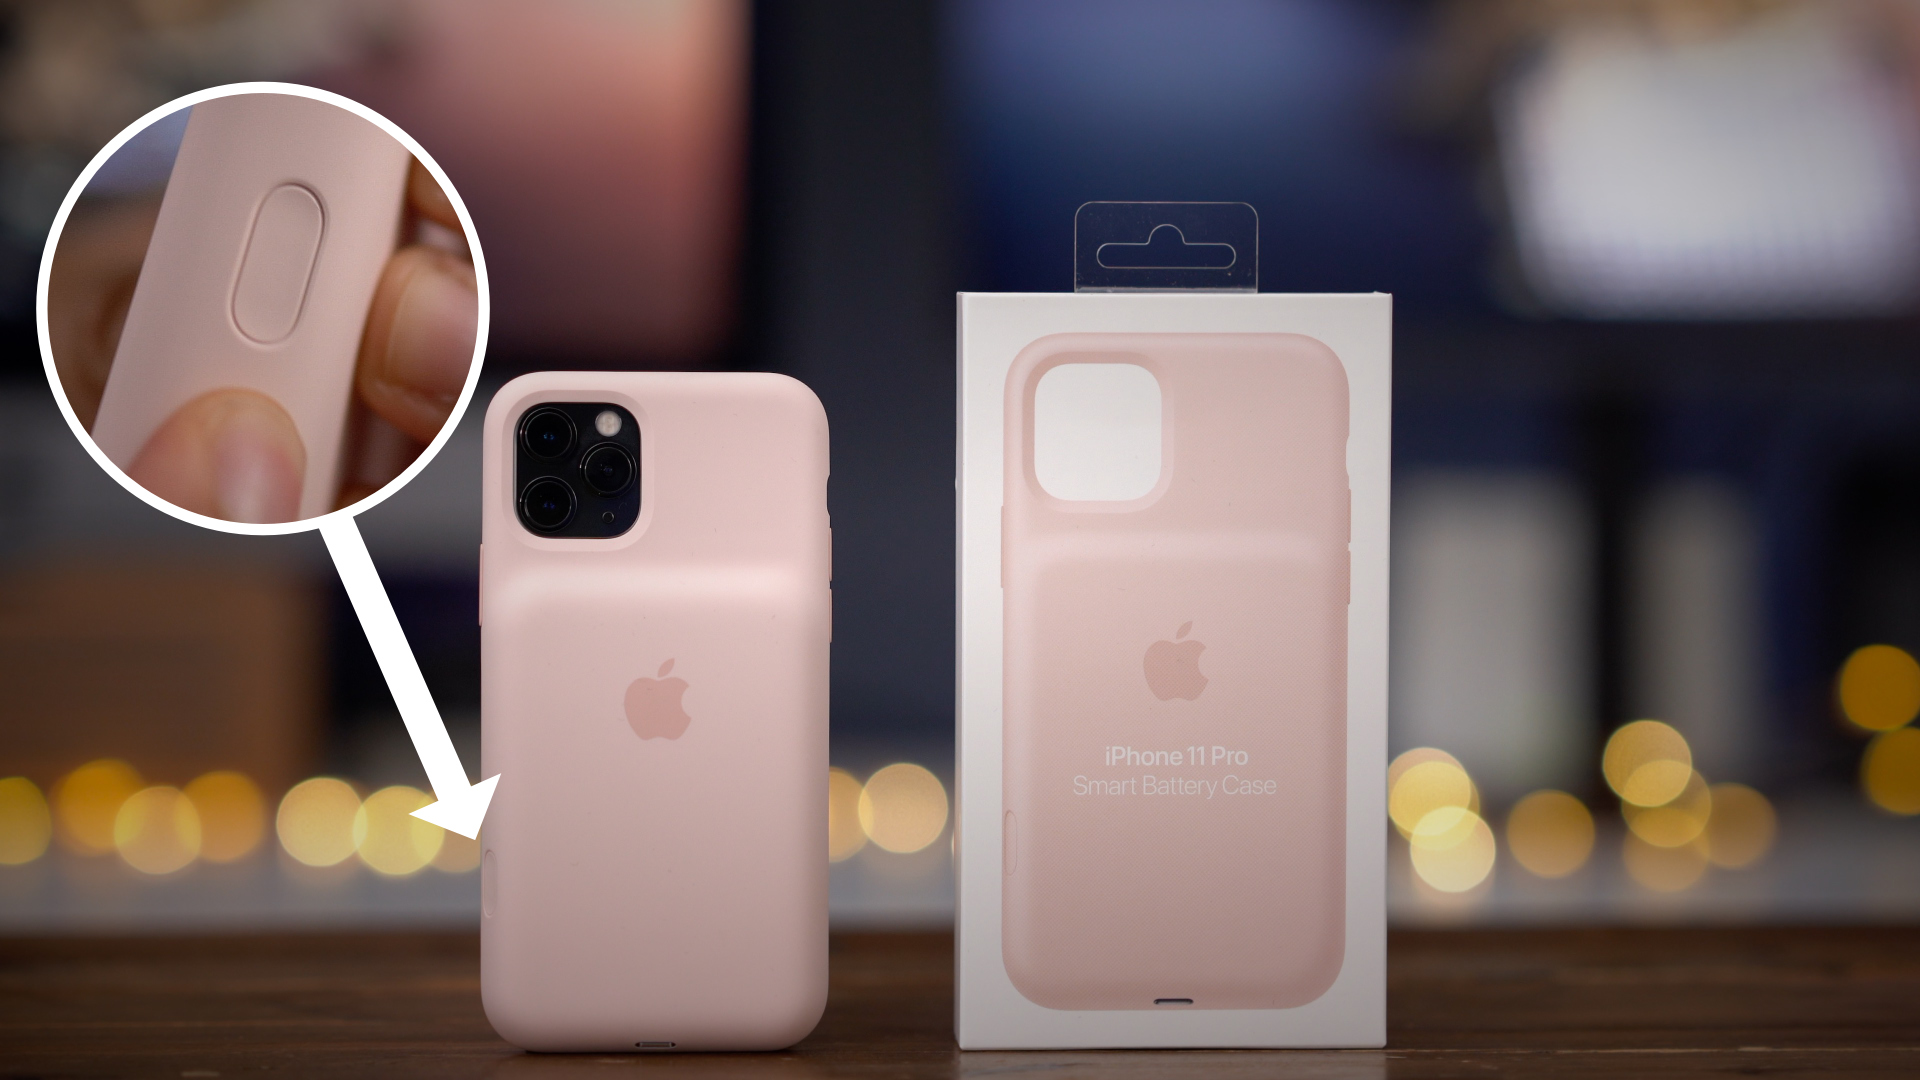 Official Apple iPhone 11 Pro / Pro Max Silicone Cover Review - YouTube